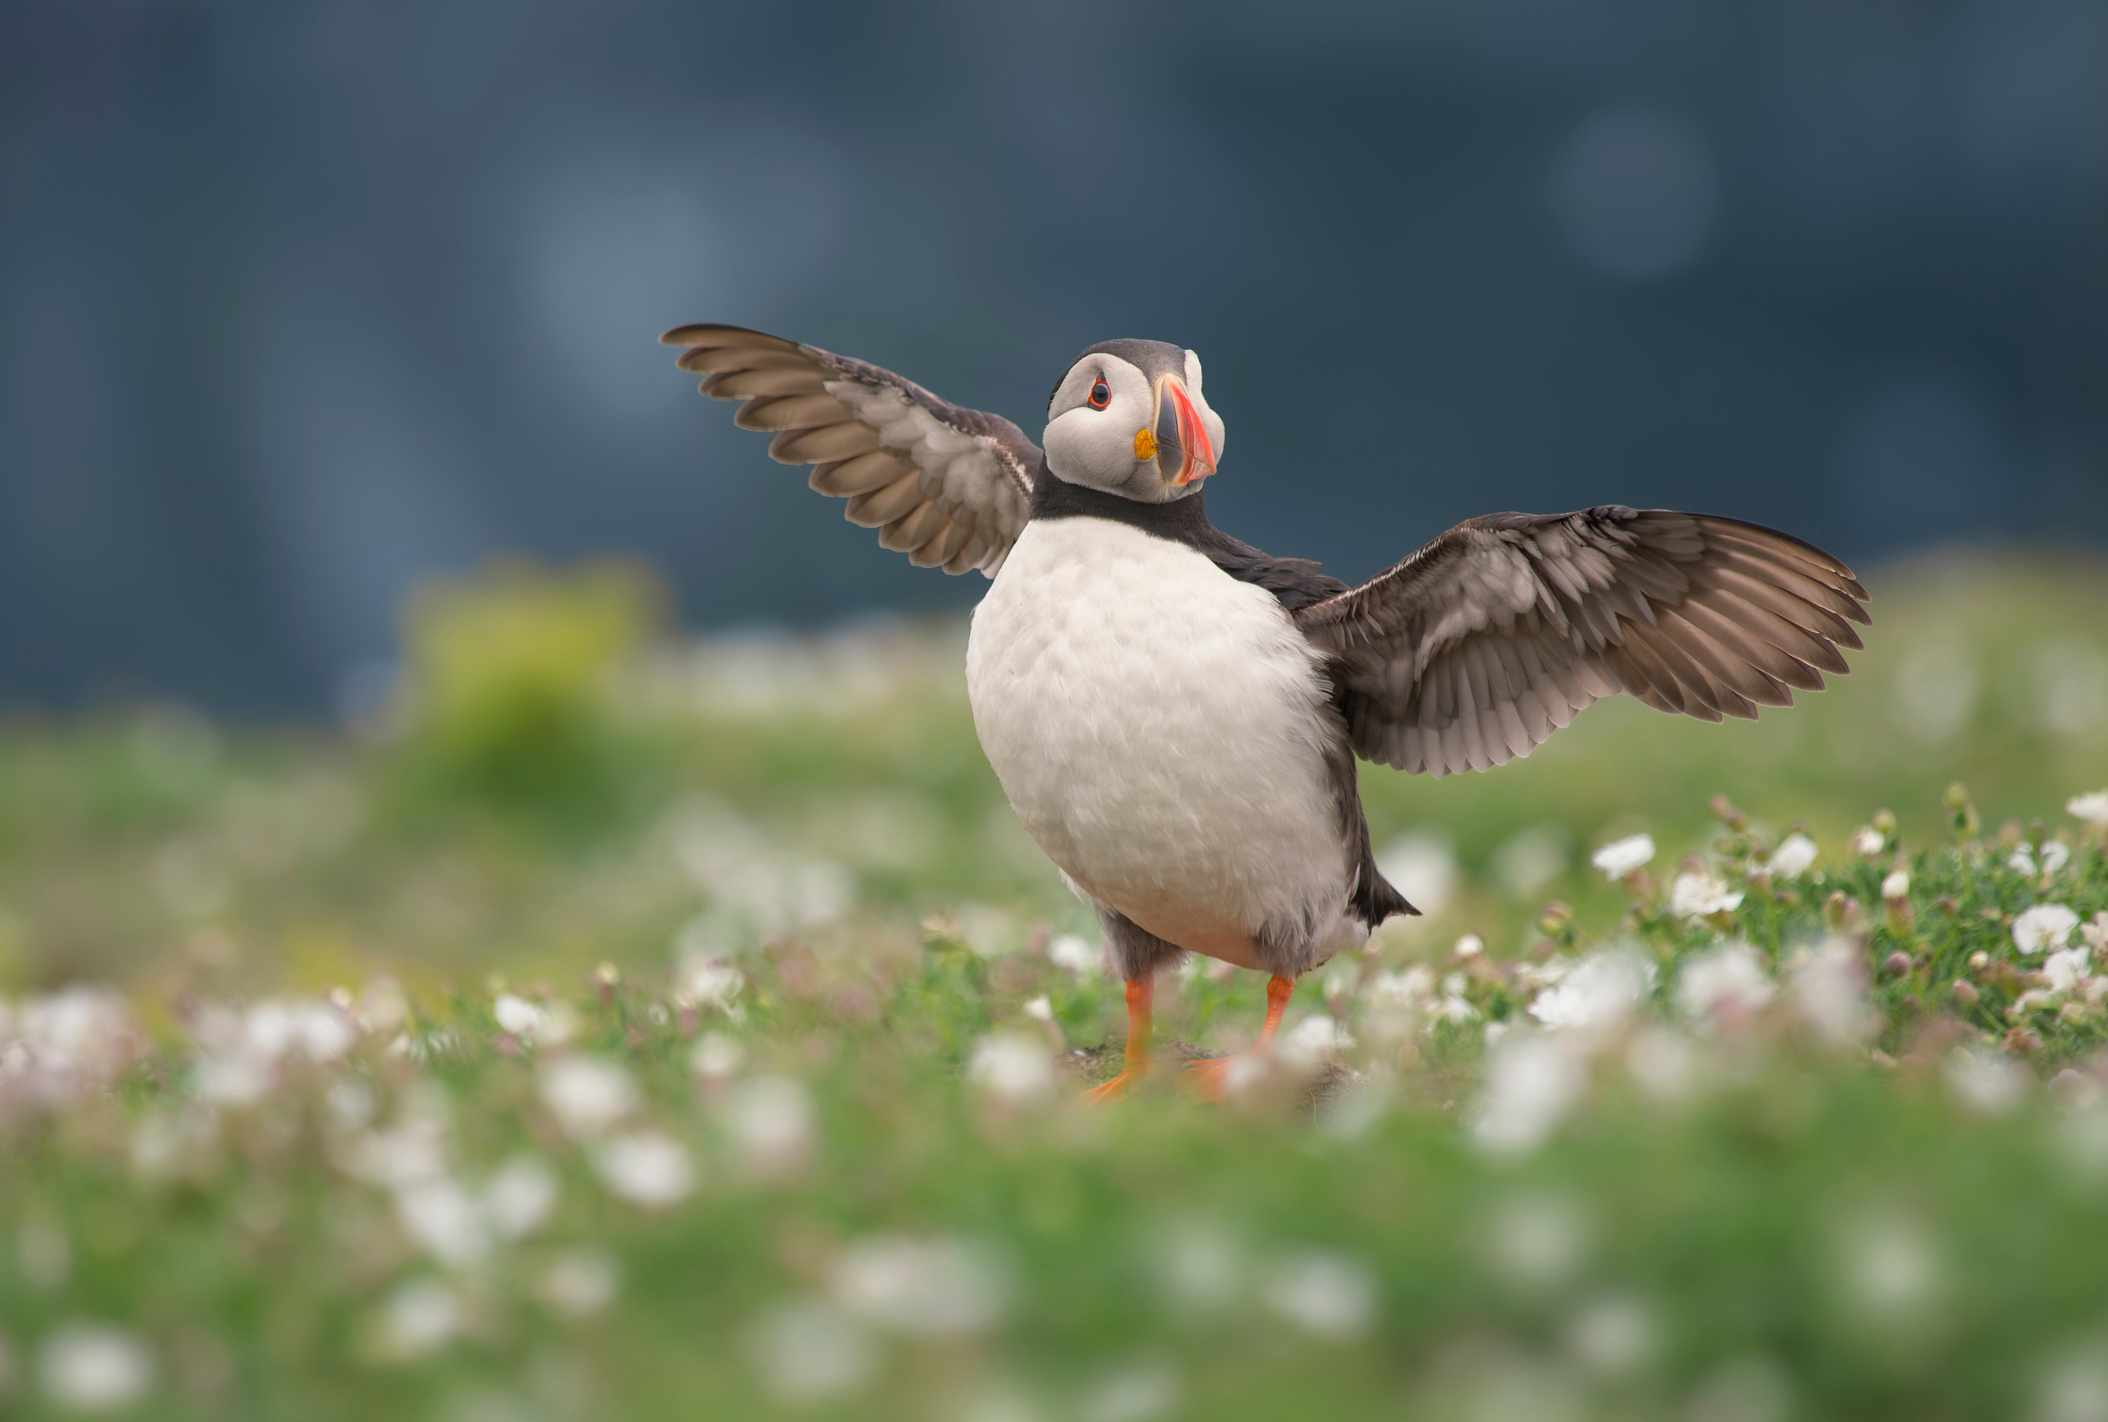 A puffin stretches its wings among summer flowers on the island of Skomer in Wales.